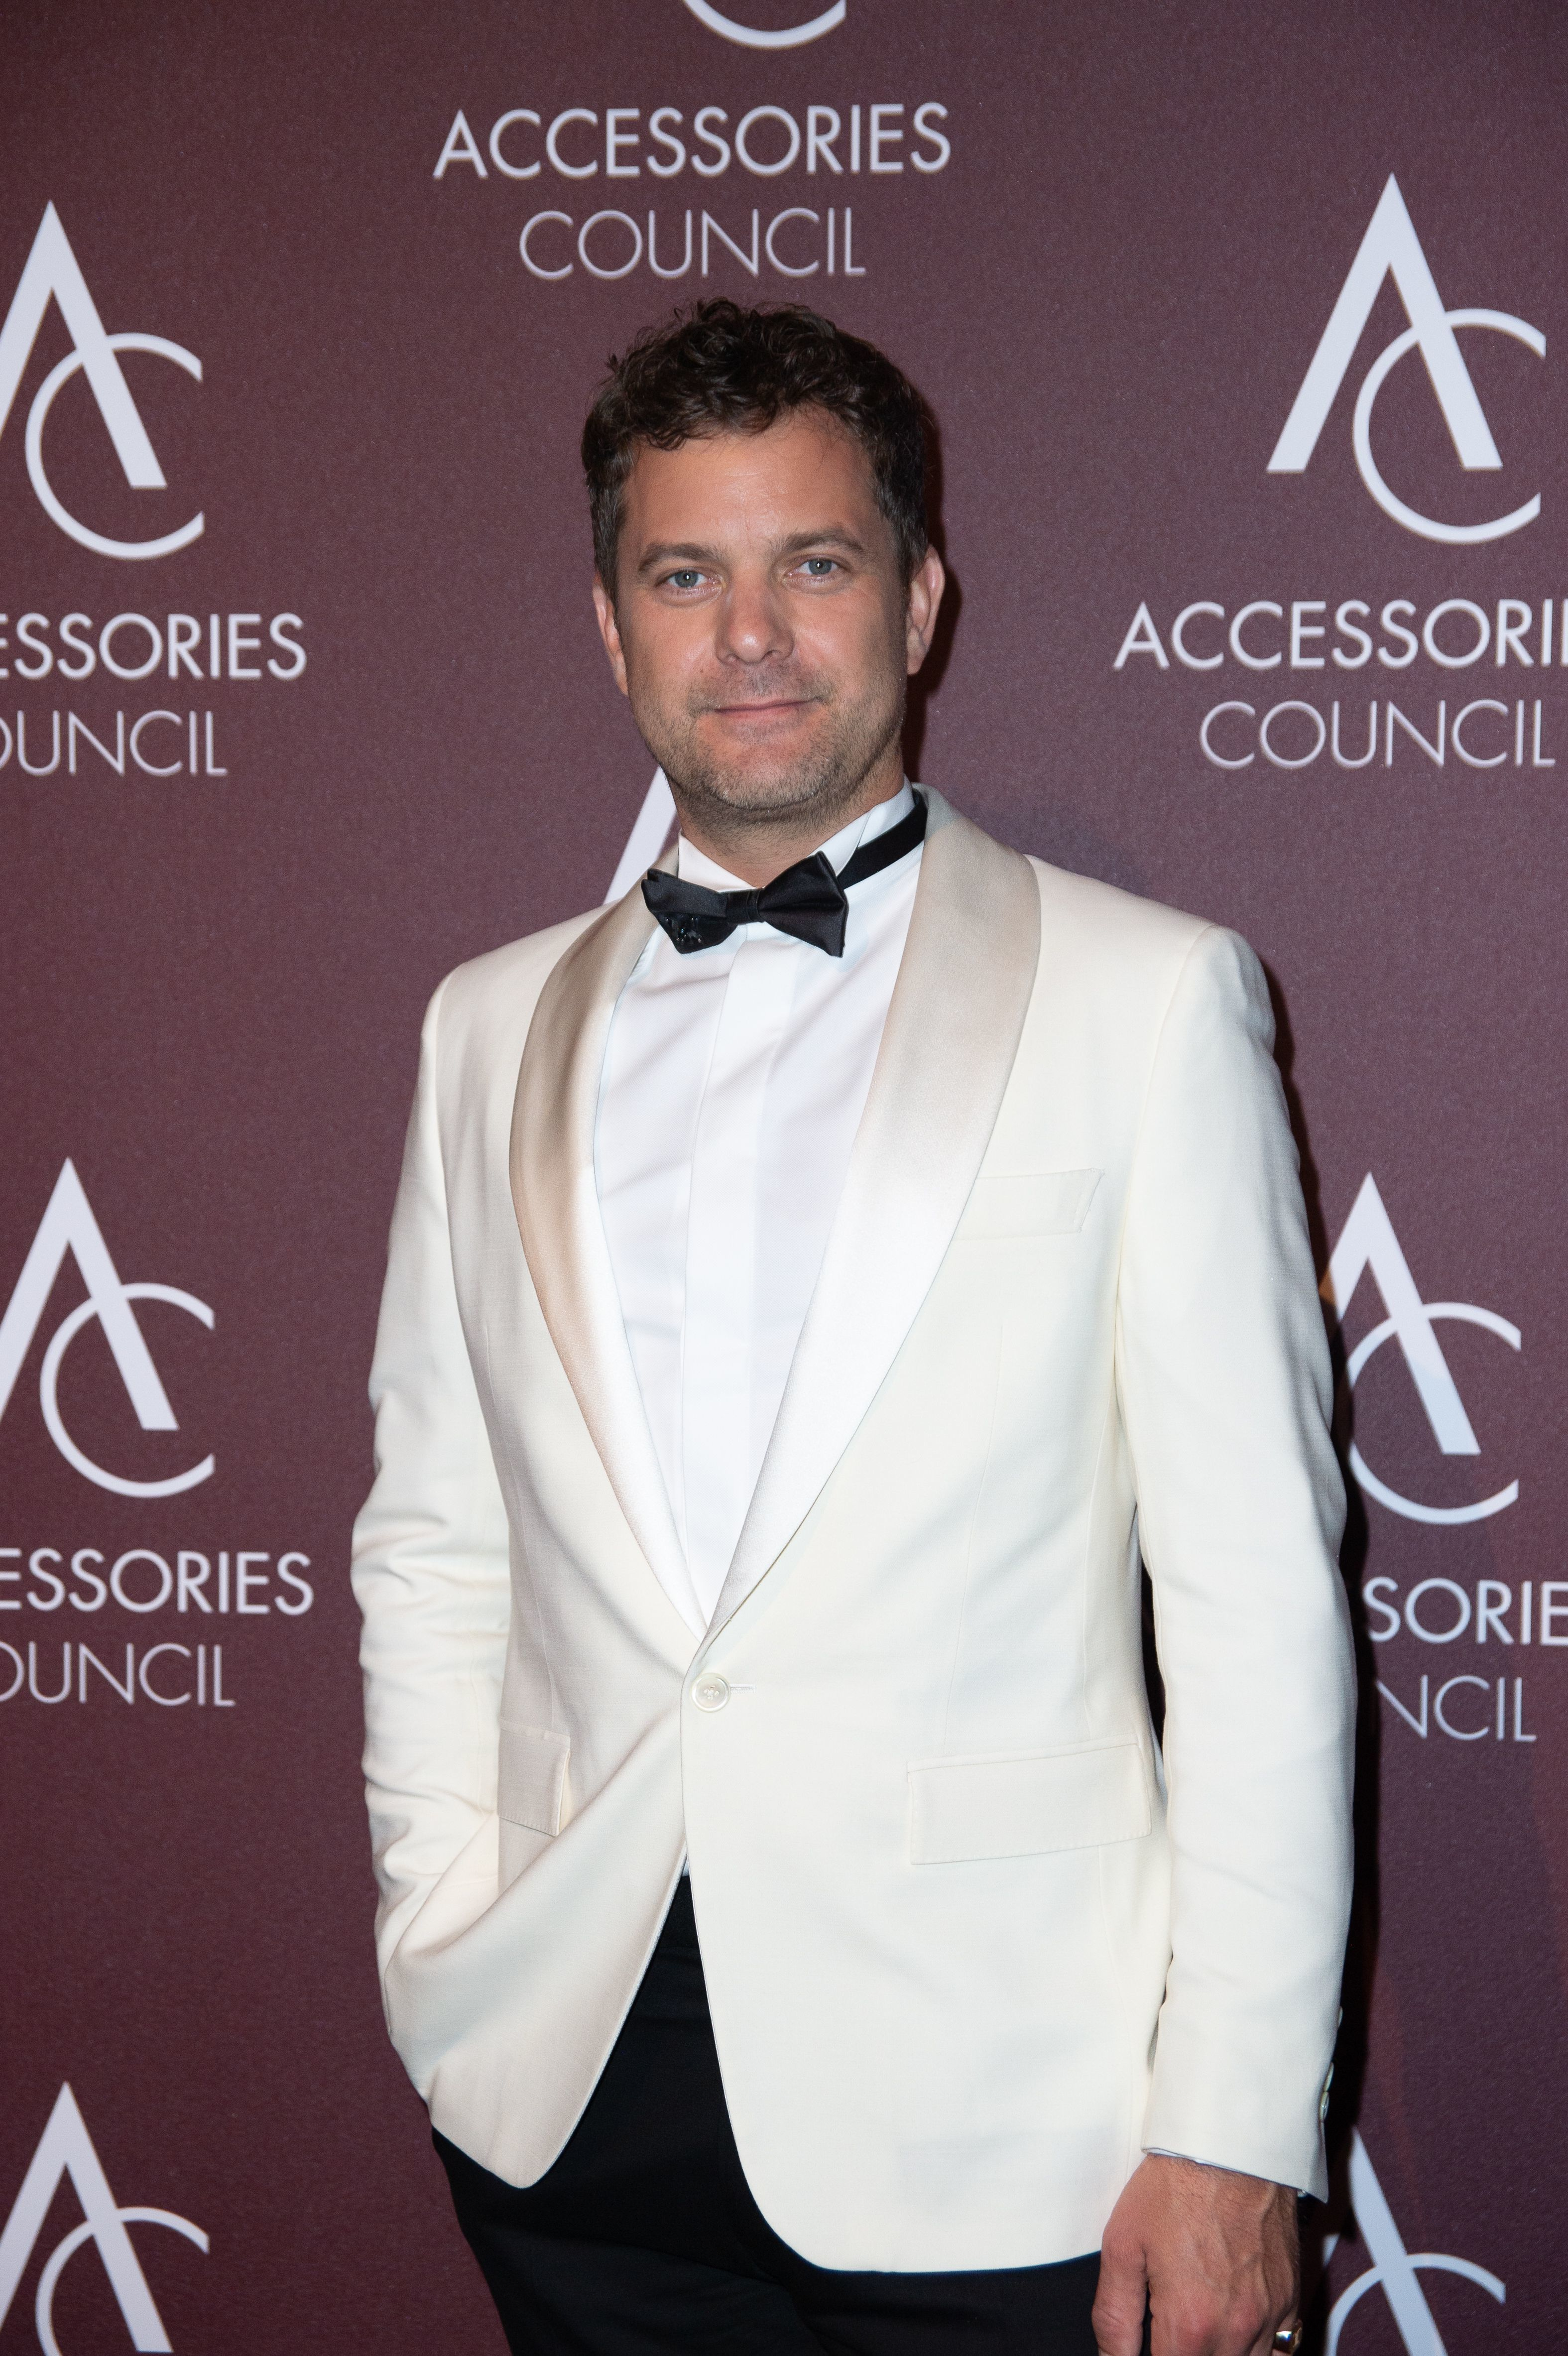 Joshua Jackson attends the 23rd Annual Ace Awards in New York City on June 10, 2019.